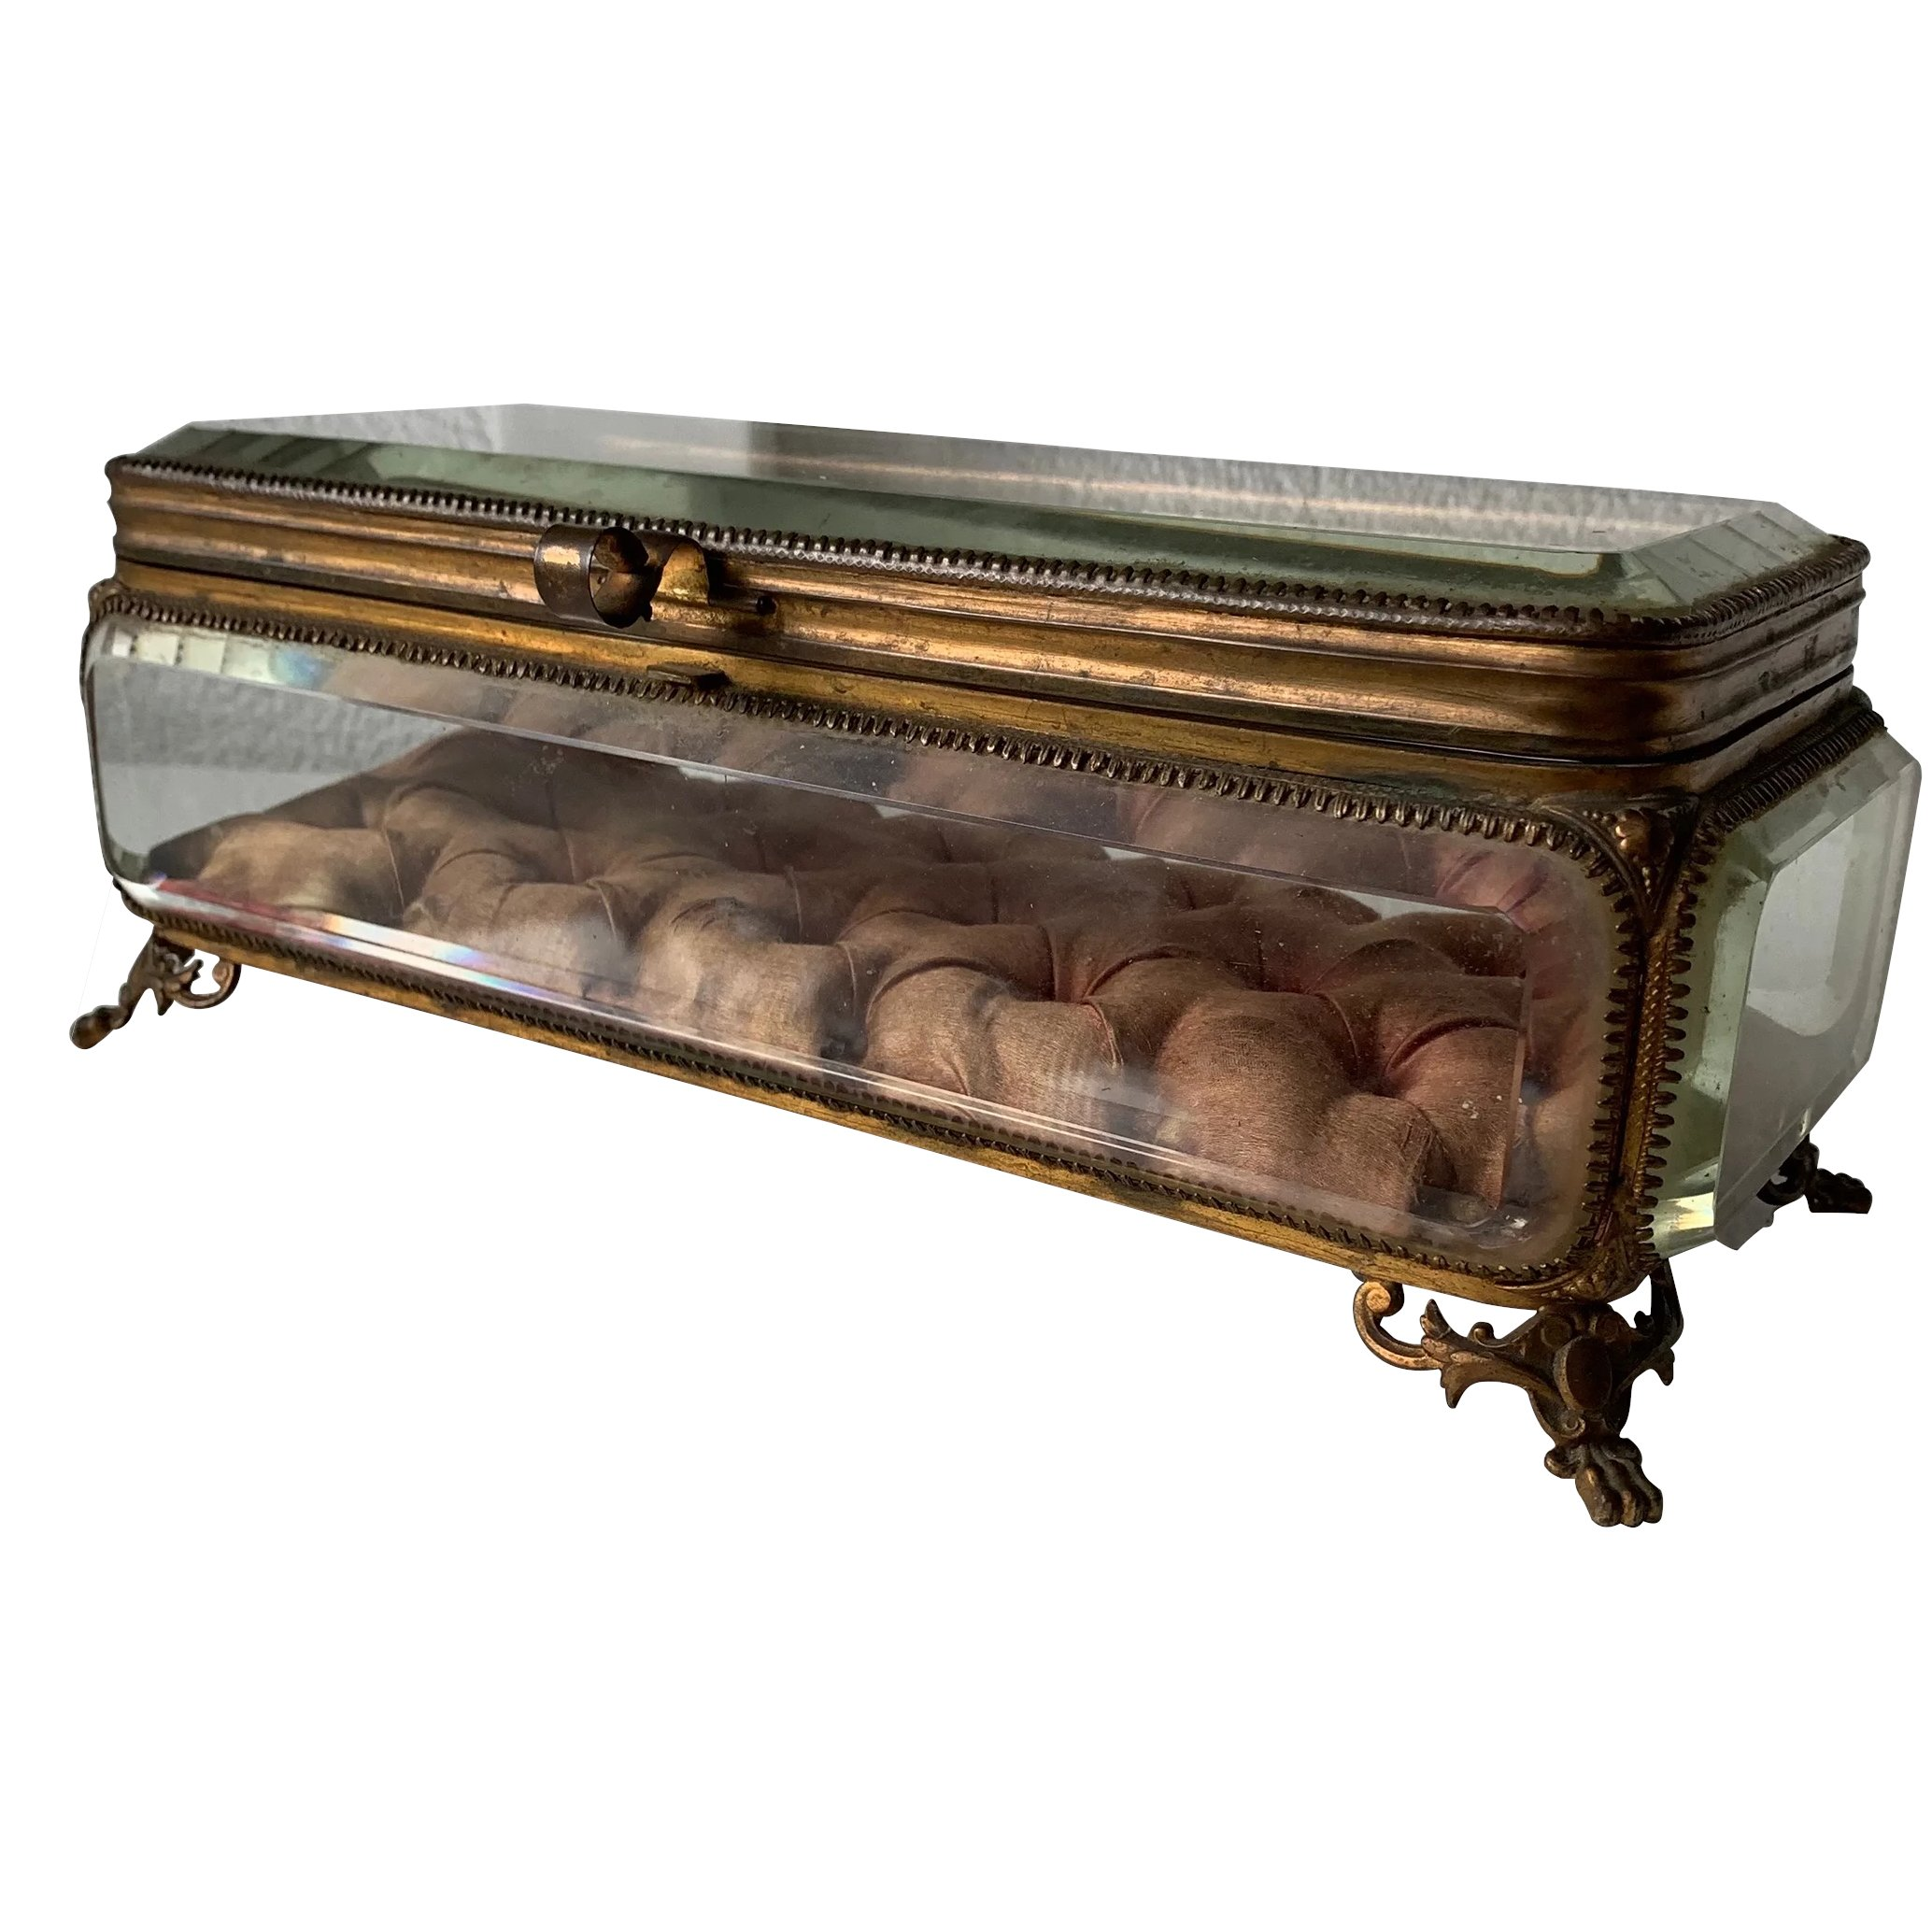 Large 19th Century French Thick Beveled Glass Jewelry Casket Box